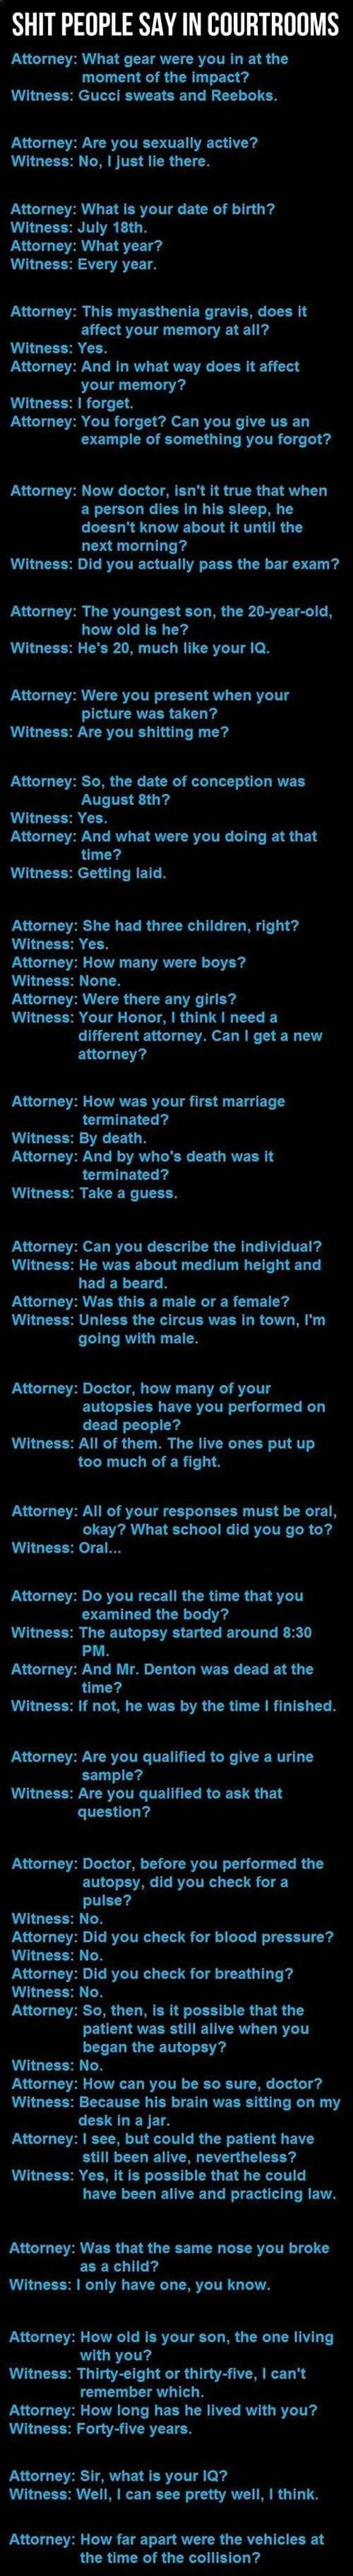 This just made me pee my pants. Dumb things people say in courtrooms…